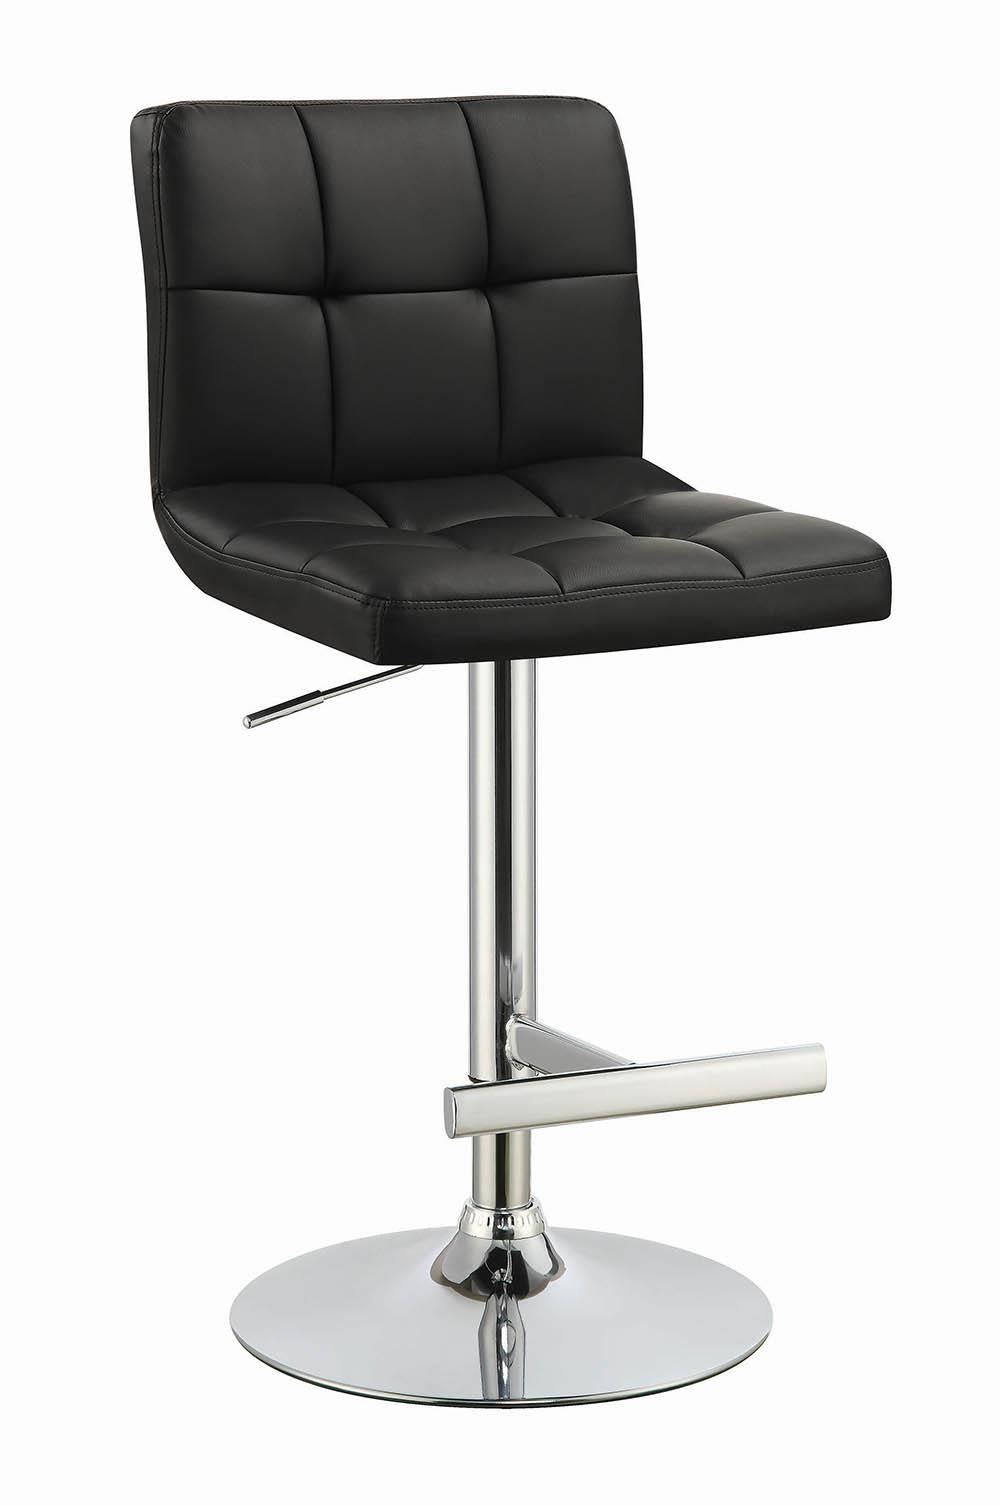 Contemporary Black and Chrome Adjustable Bar Stool